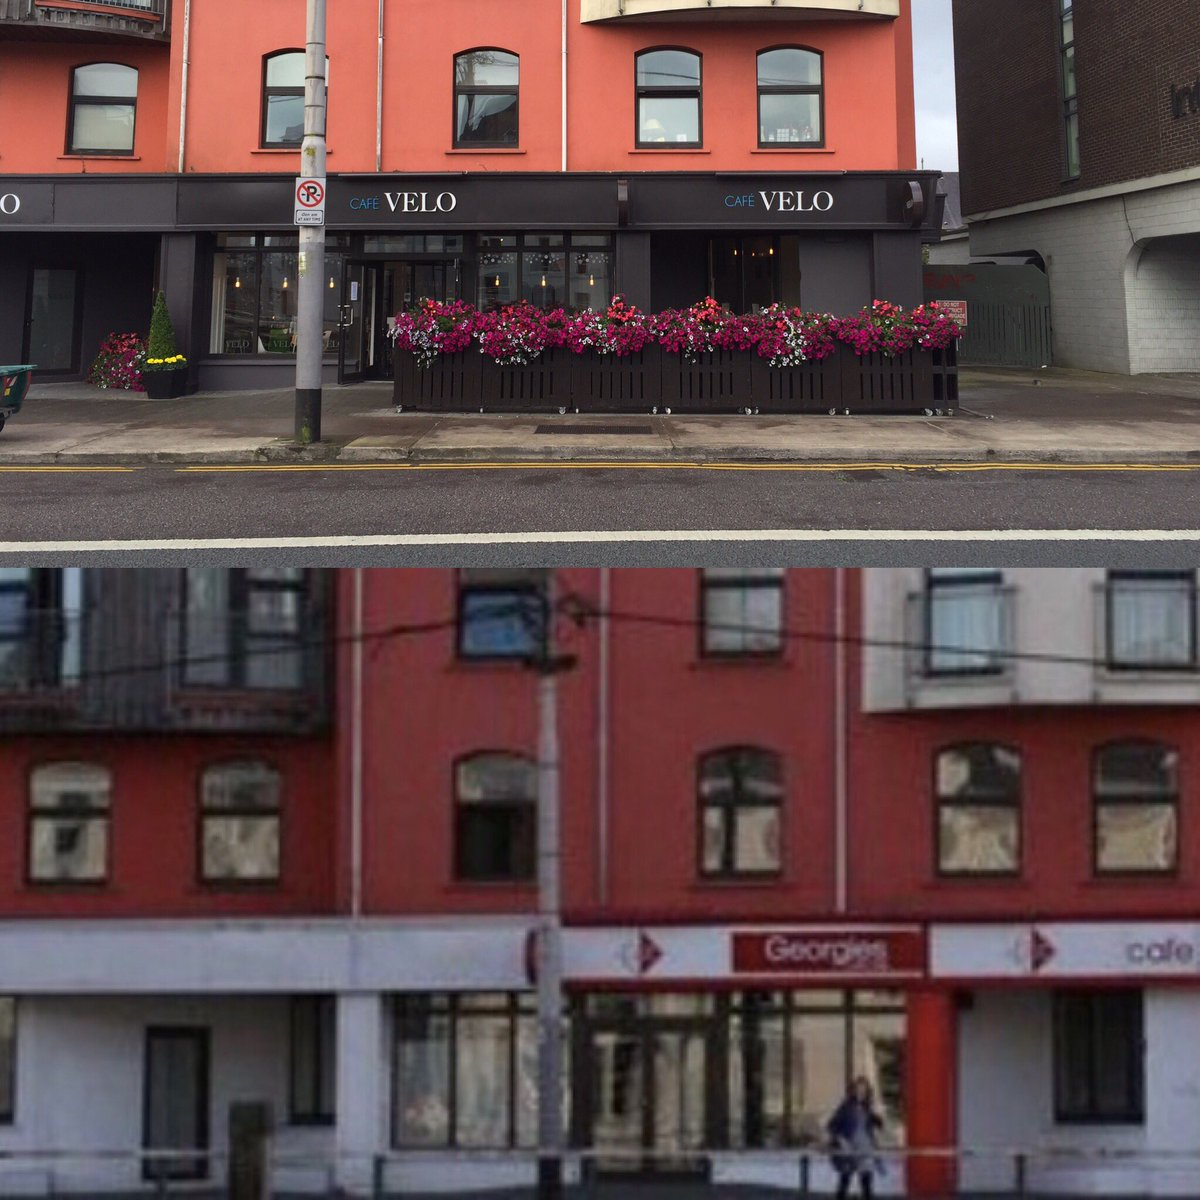 cafe velo on twitter were looking for help anyone know how we can update the image from georgies to cafe velo on search enginescork